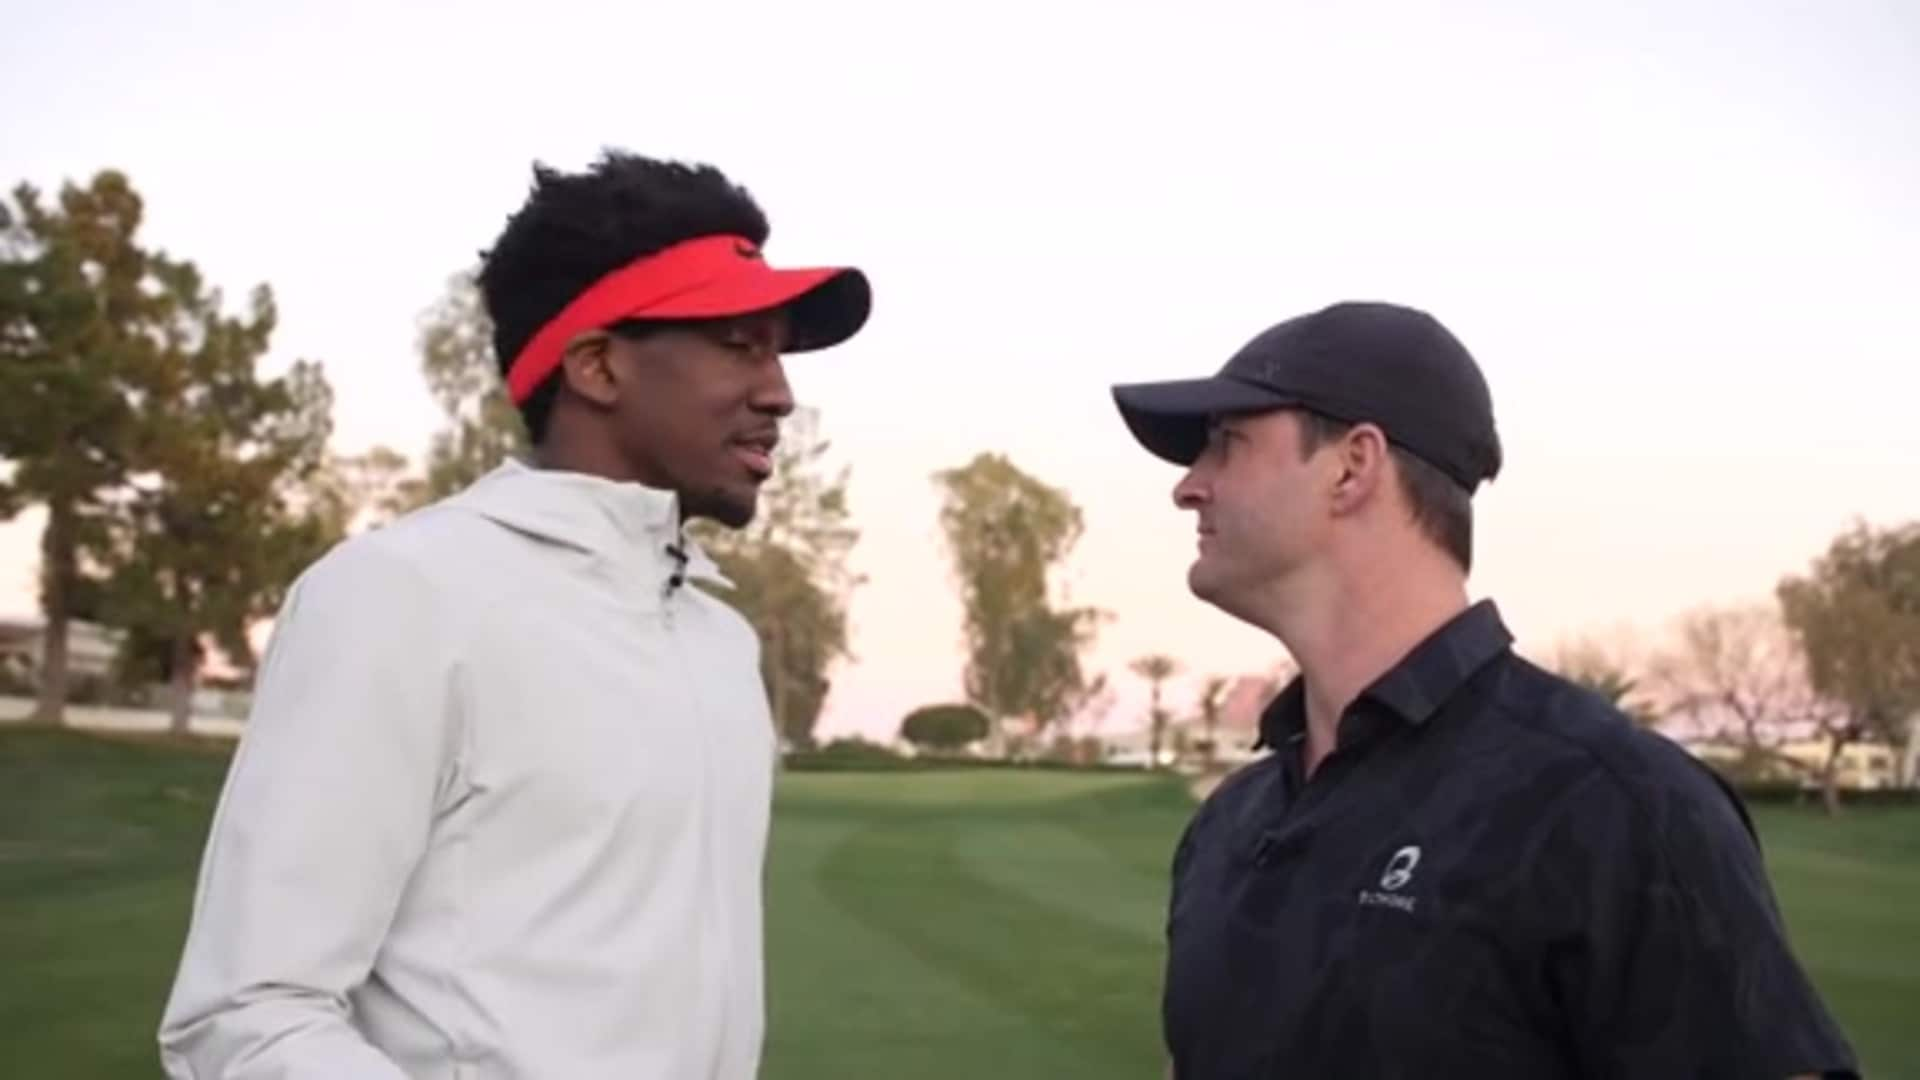 Life in the League, pres. by Jeep: Golfing in Phoenix